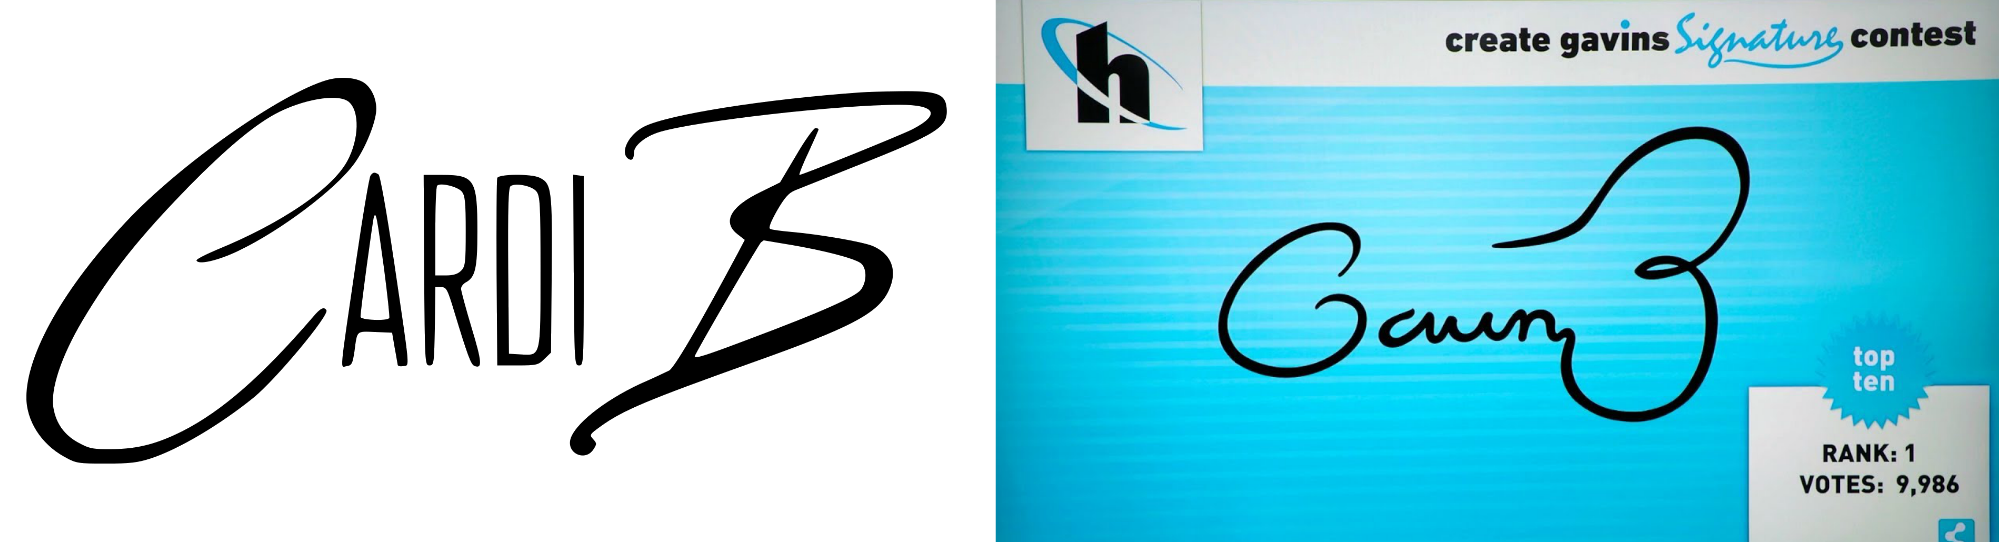 Um So I Just Saw Cardi B S Logo For The First Time Looked Familiar Logos Hip Hop Poster Silicon Valley Hbo